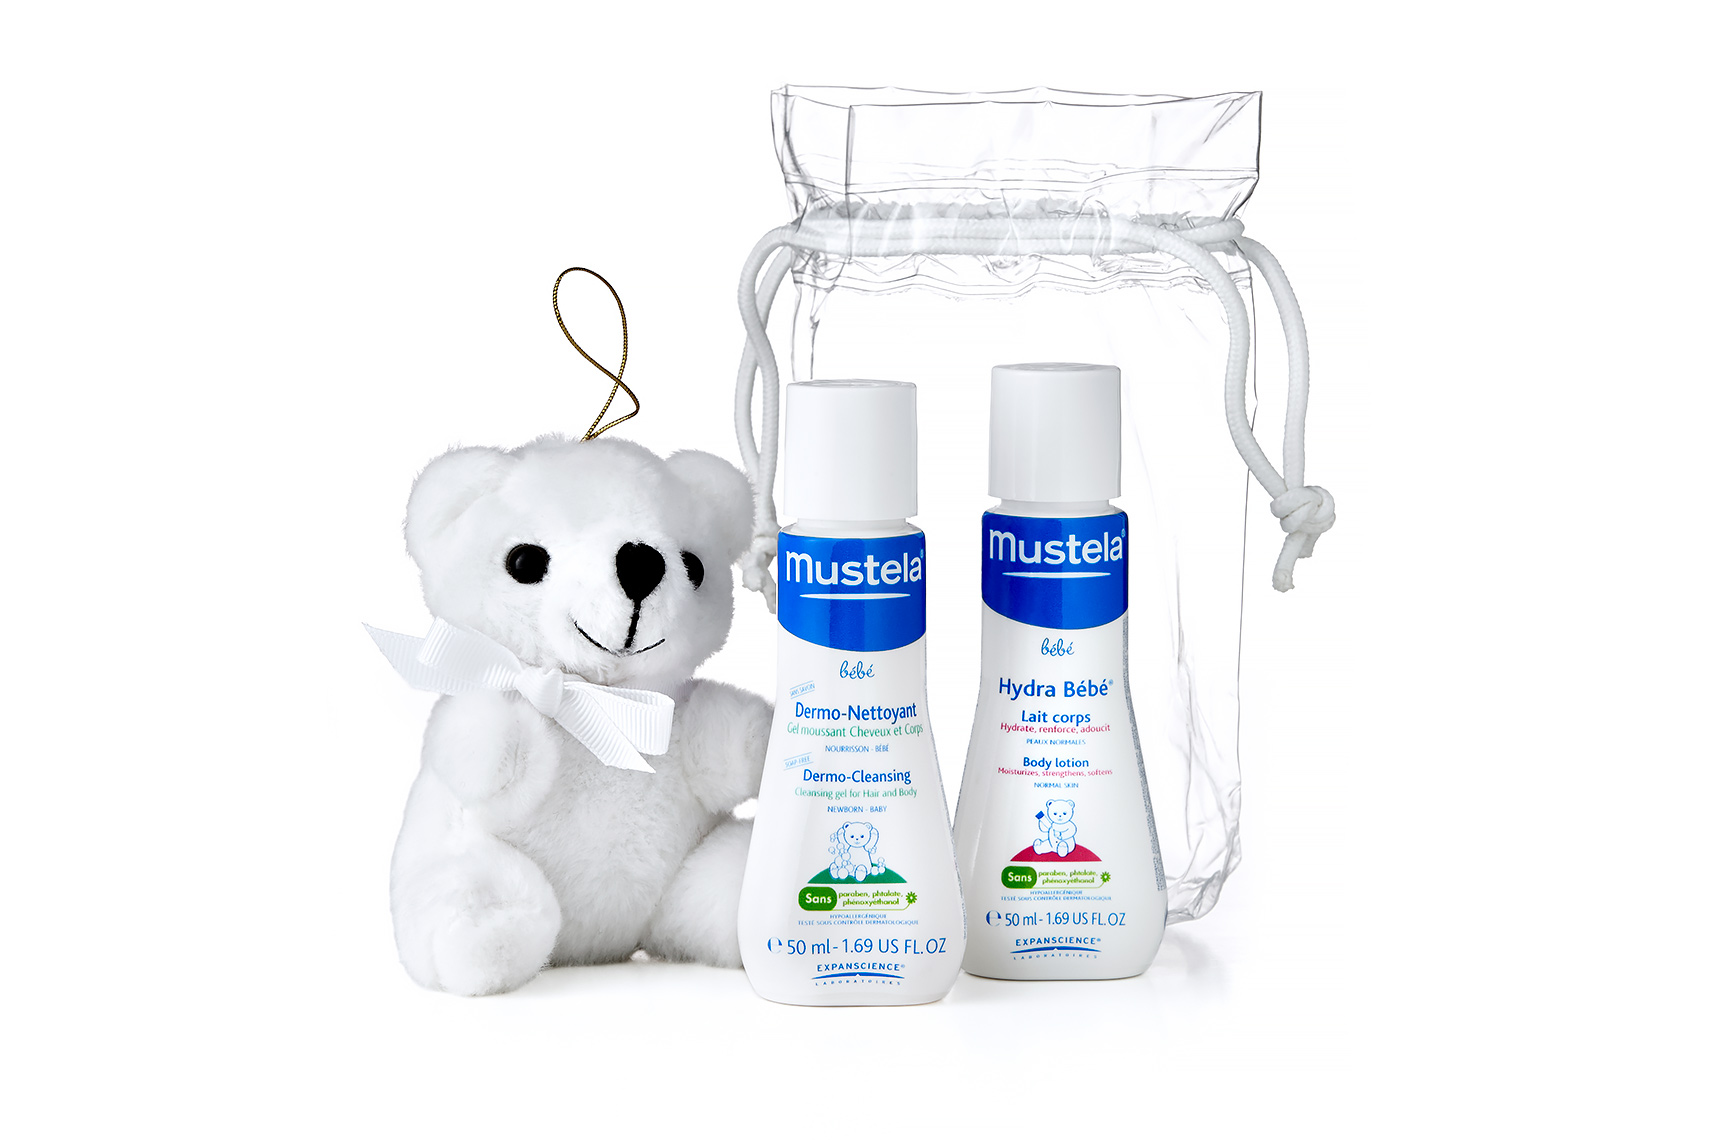 ADVERTISE-StillLife15-Principal-Marketing-Mustela